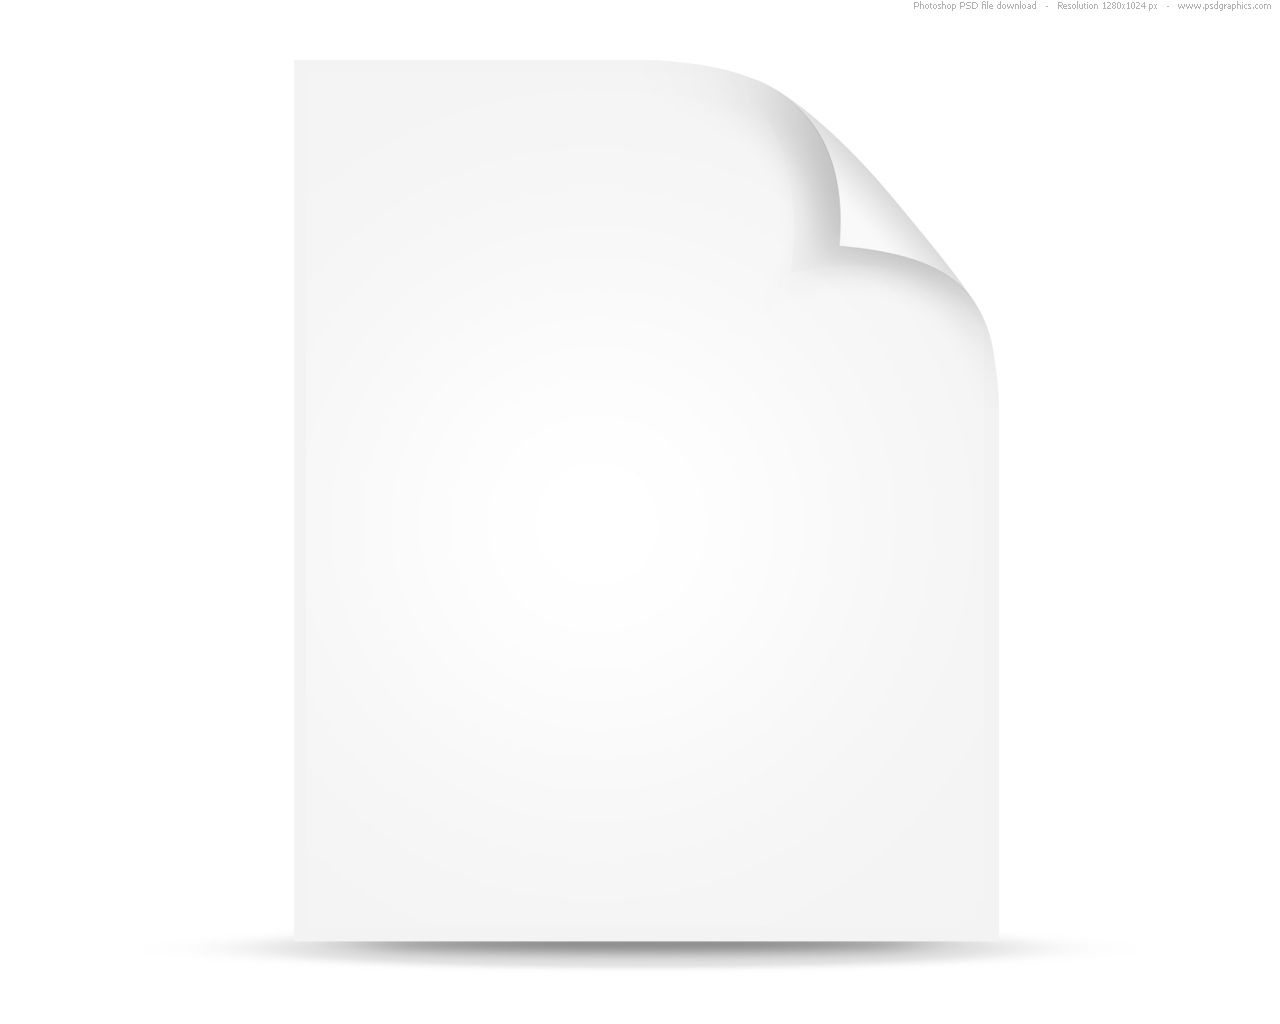 blank documents